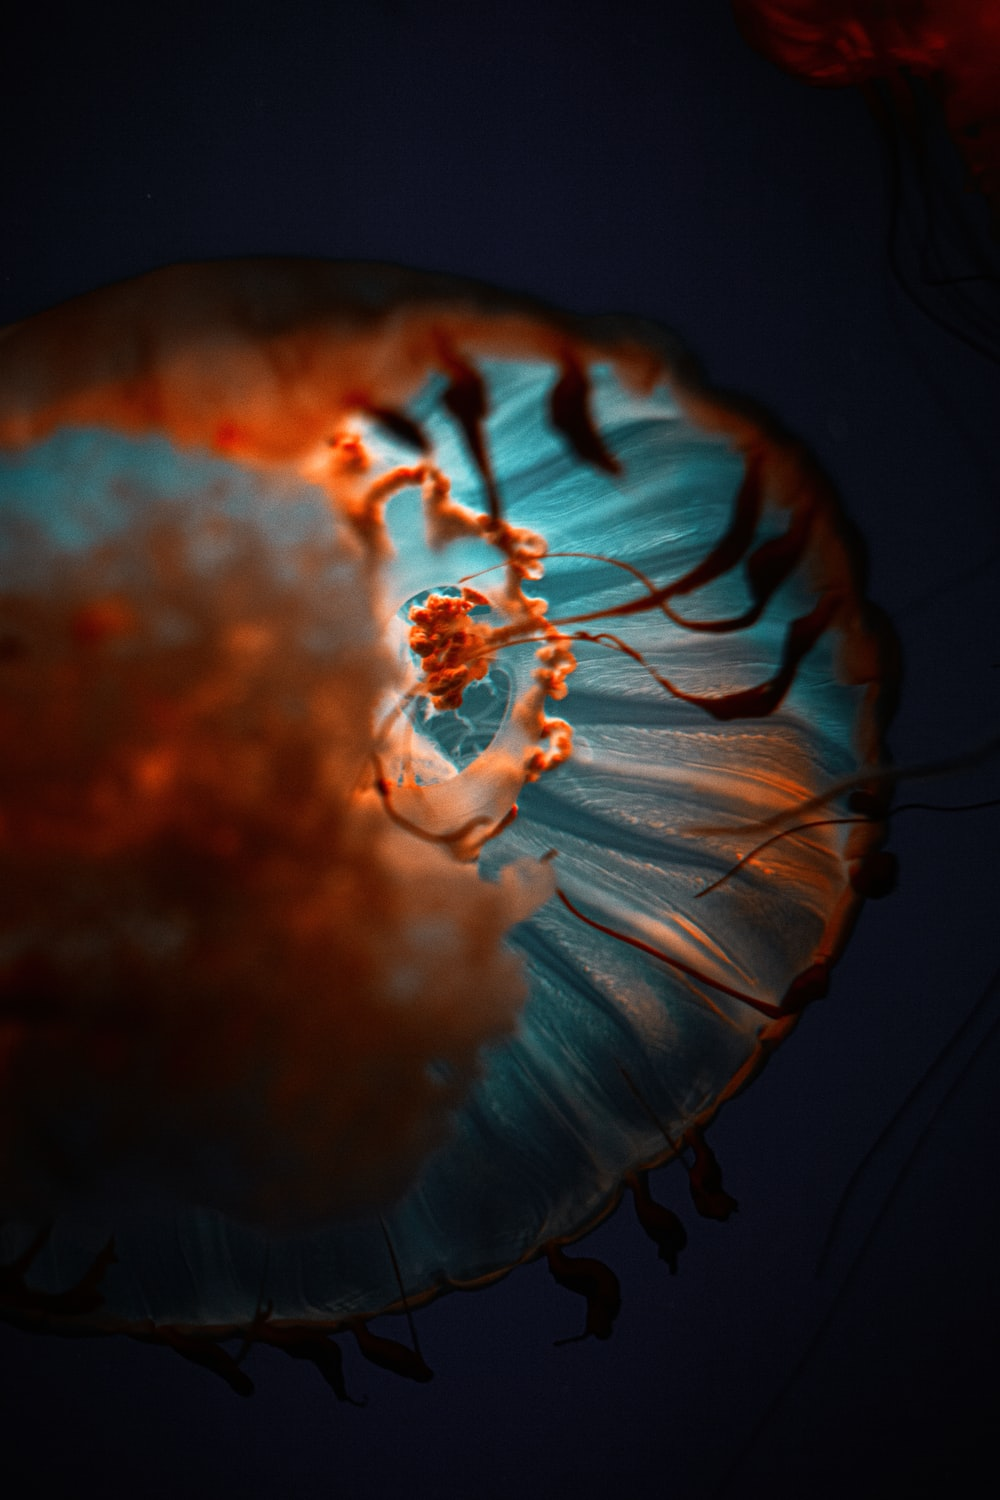 blue and white jelly fish